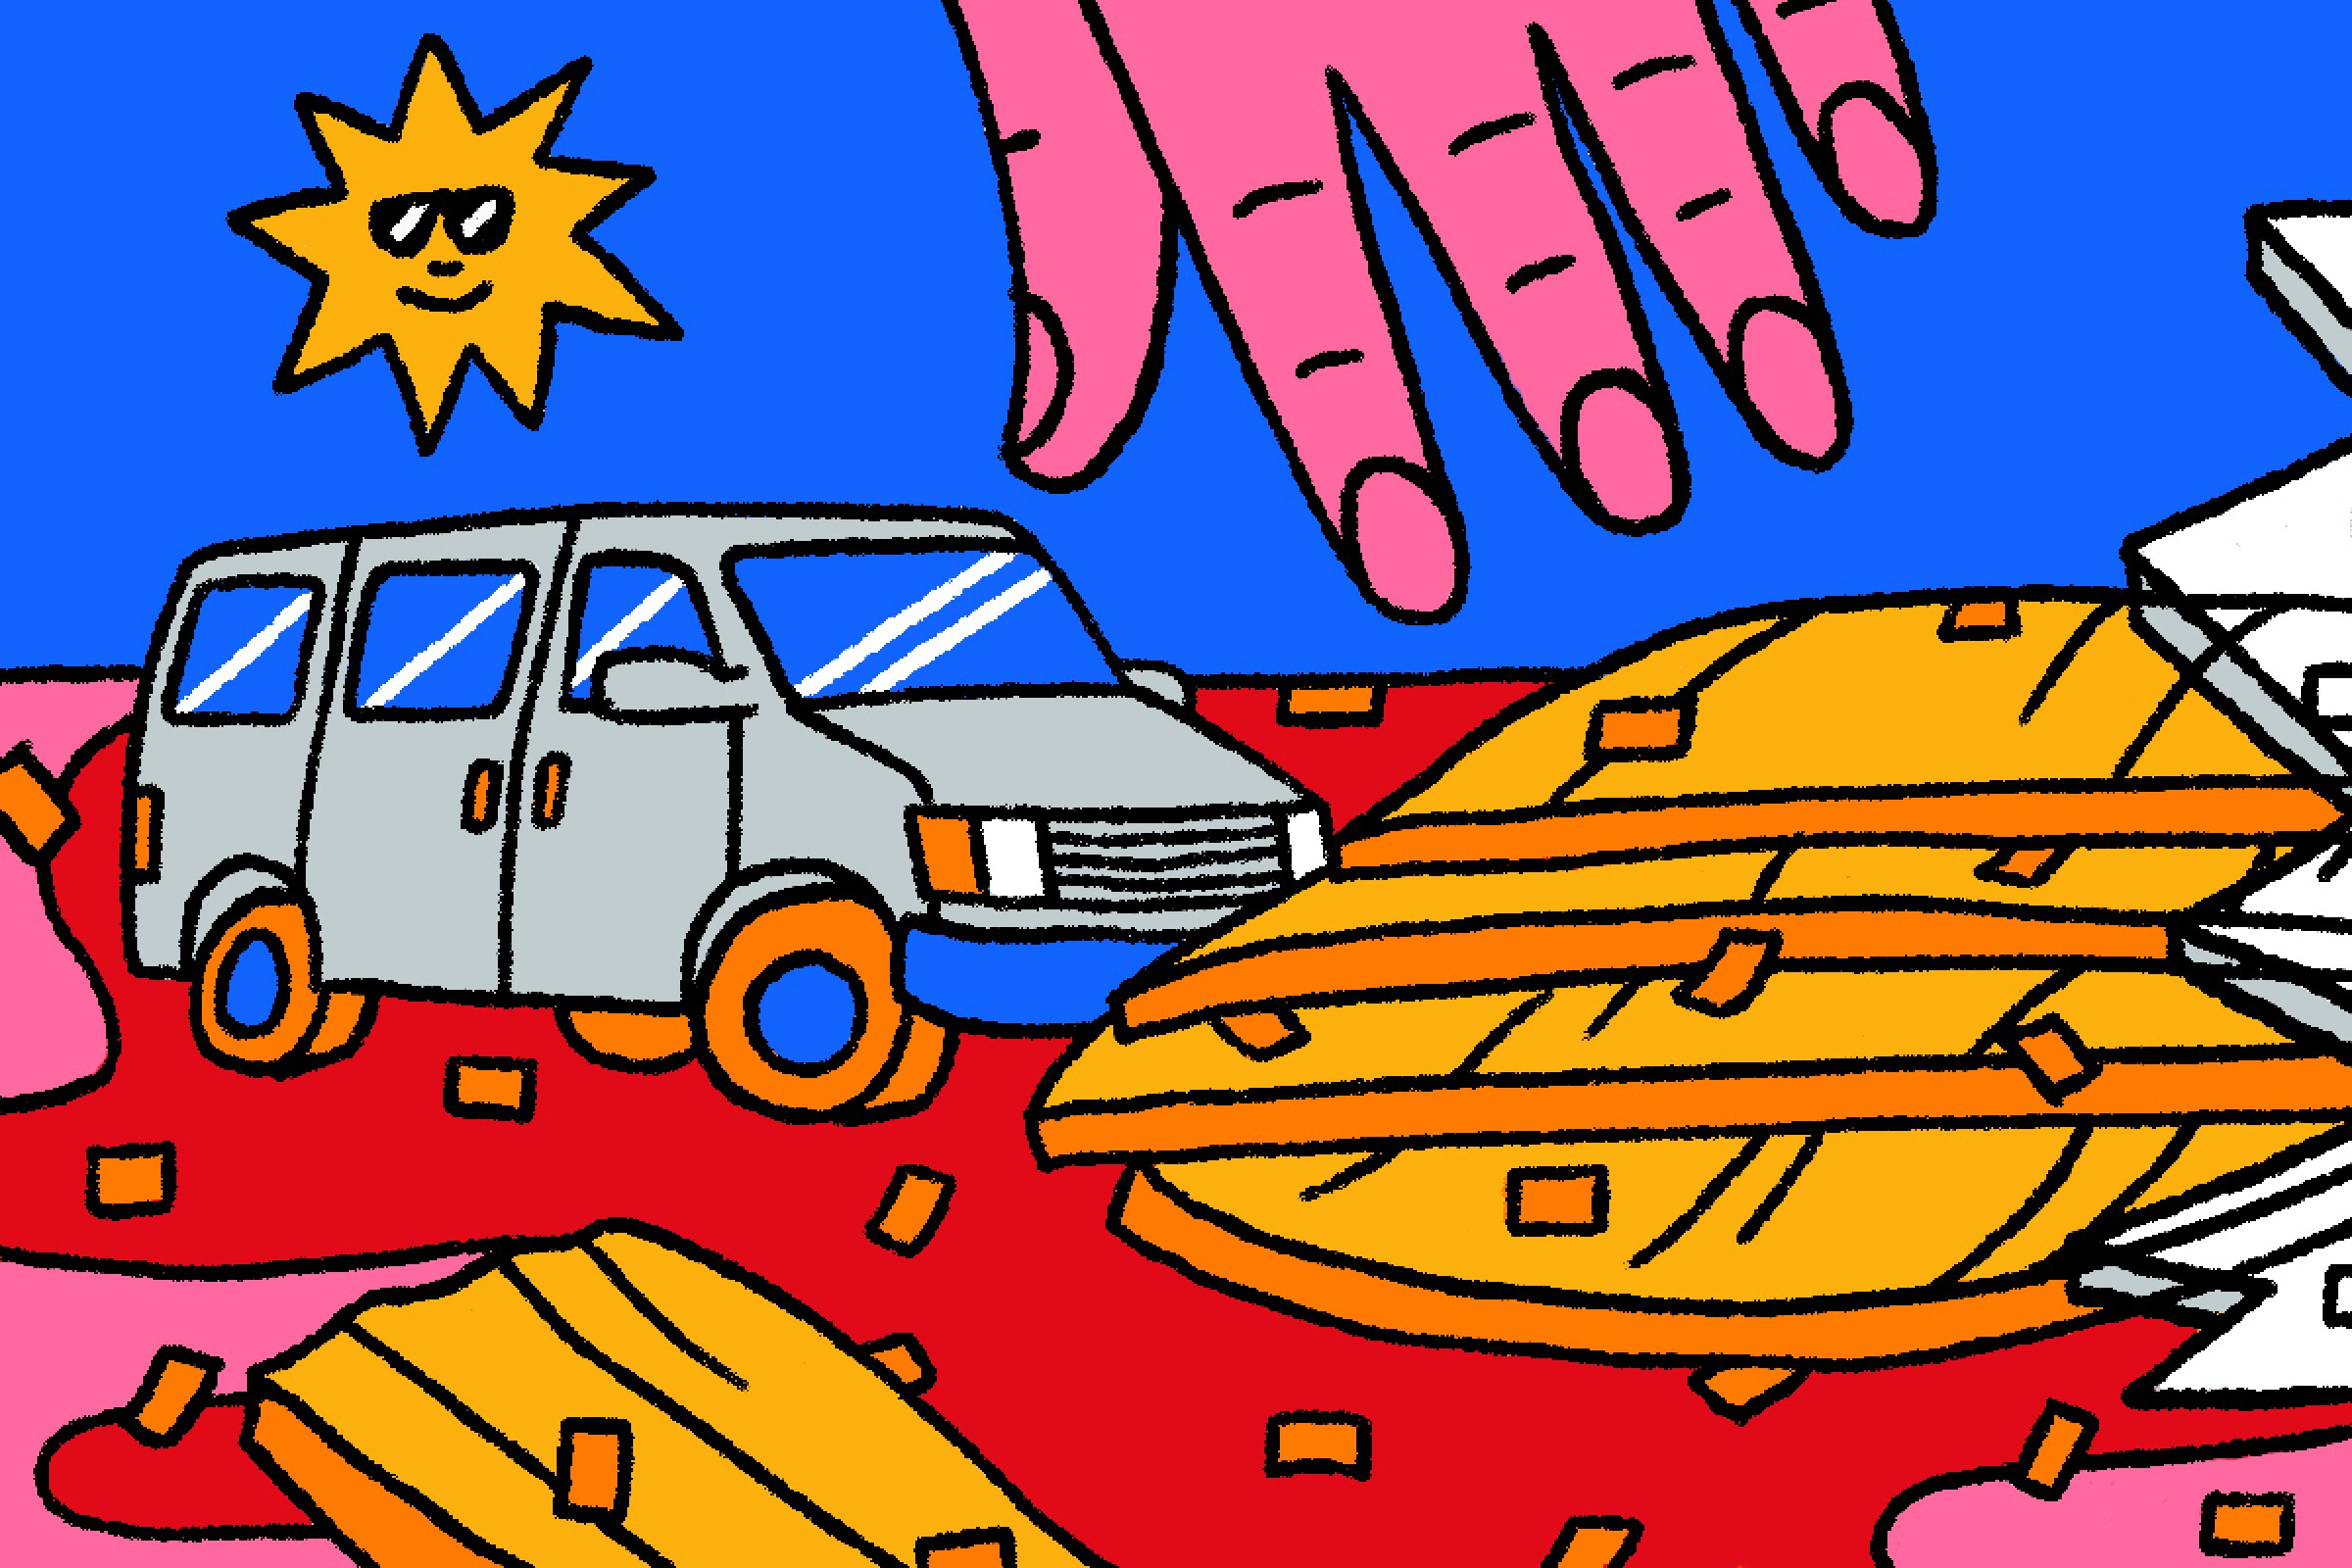 Illustration of a broken jar of kimchi, a hand and a 1995 Chevrolet Astro van.